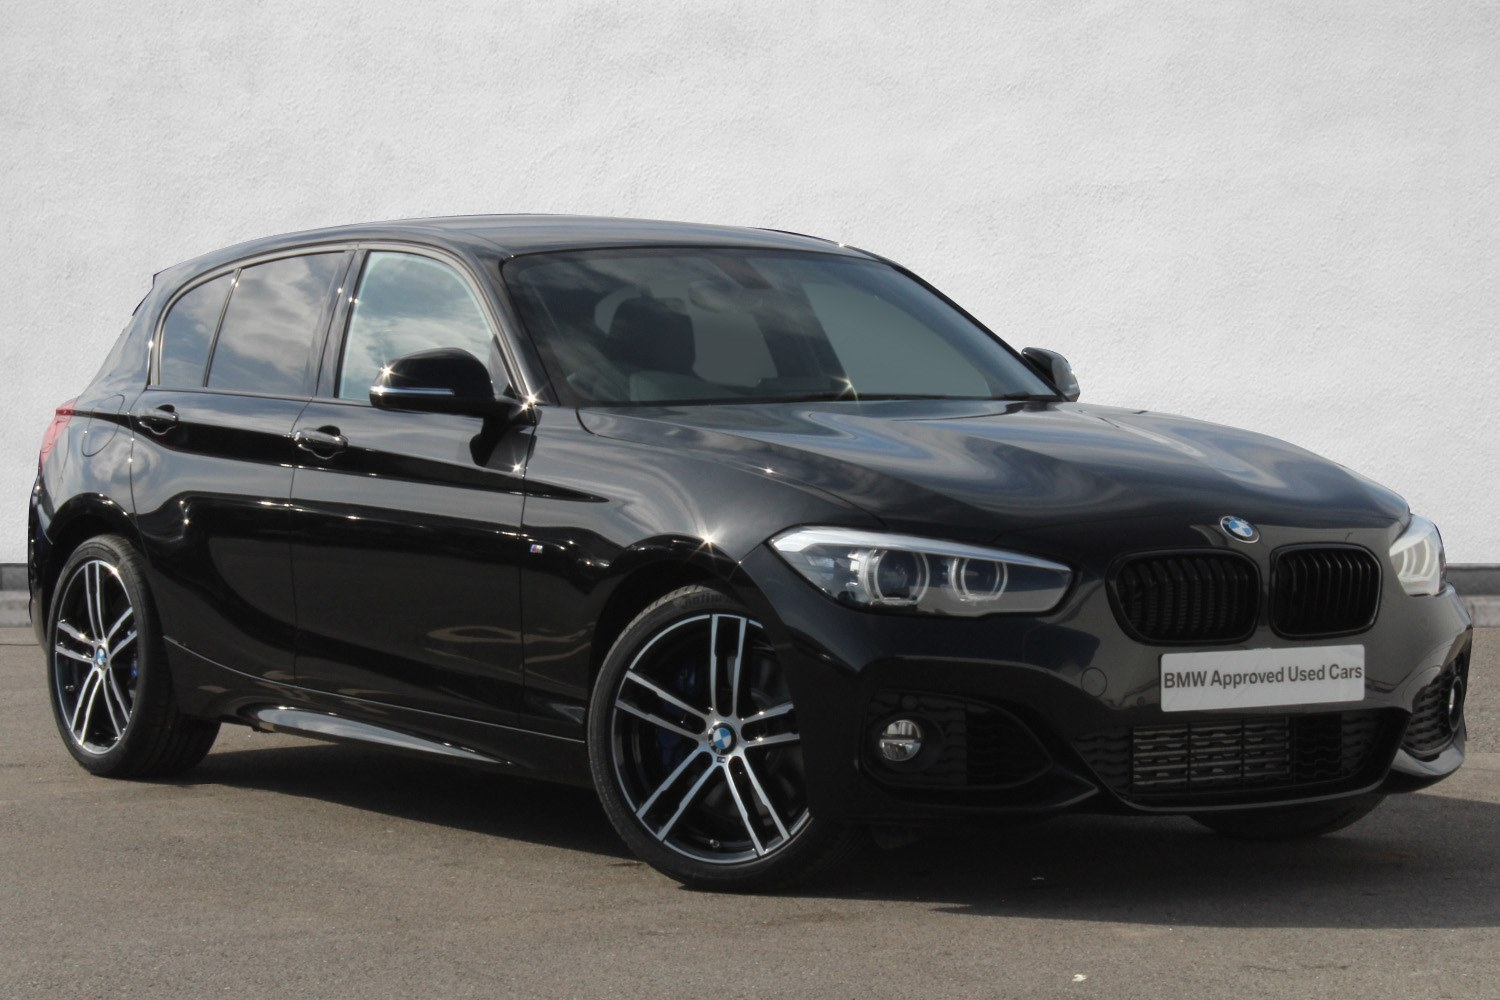 Used Bmw 1 Series 118i 1 5 M Sport Shadow Ed 5dr Step Auto